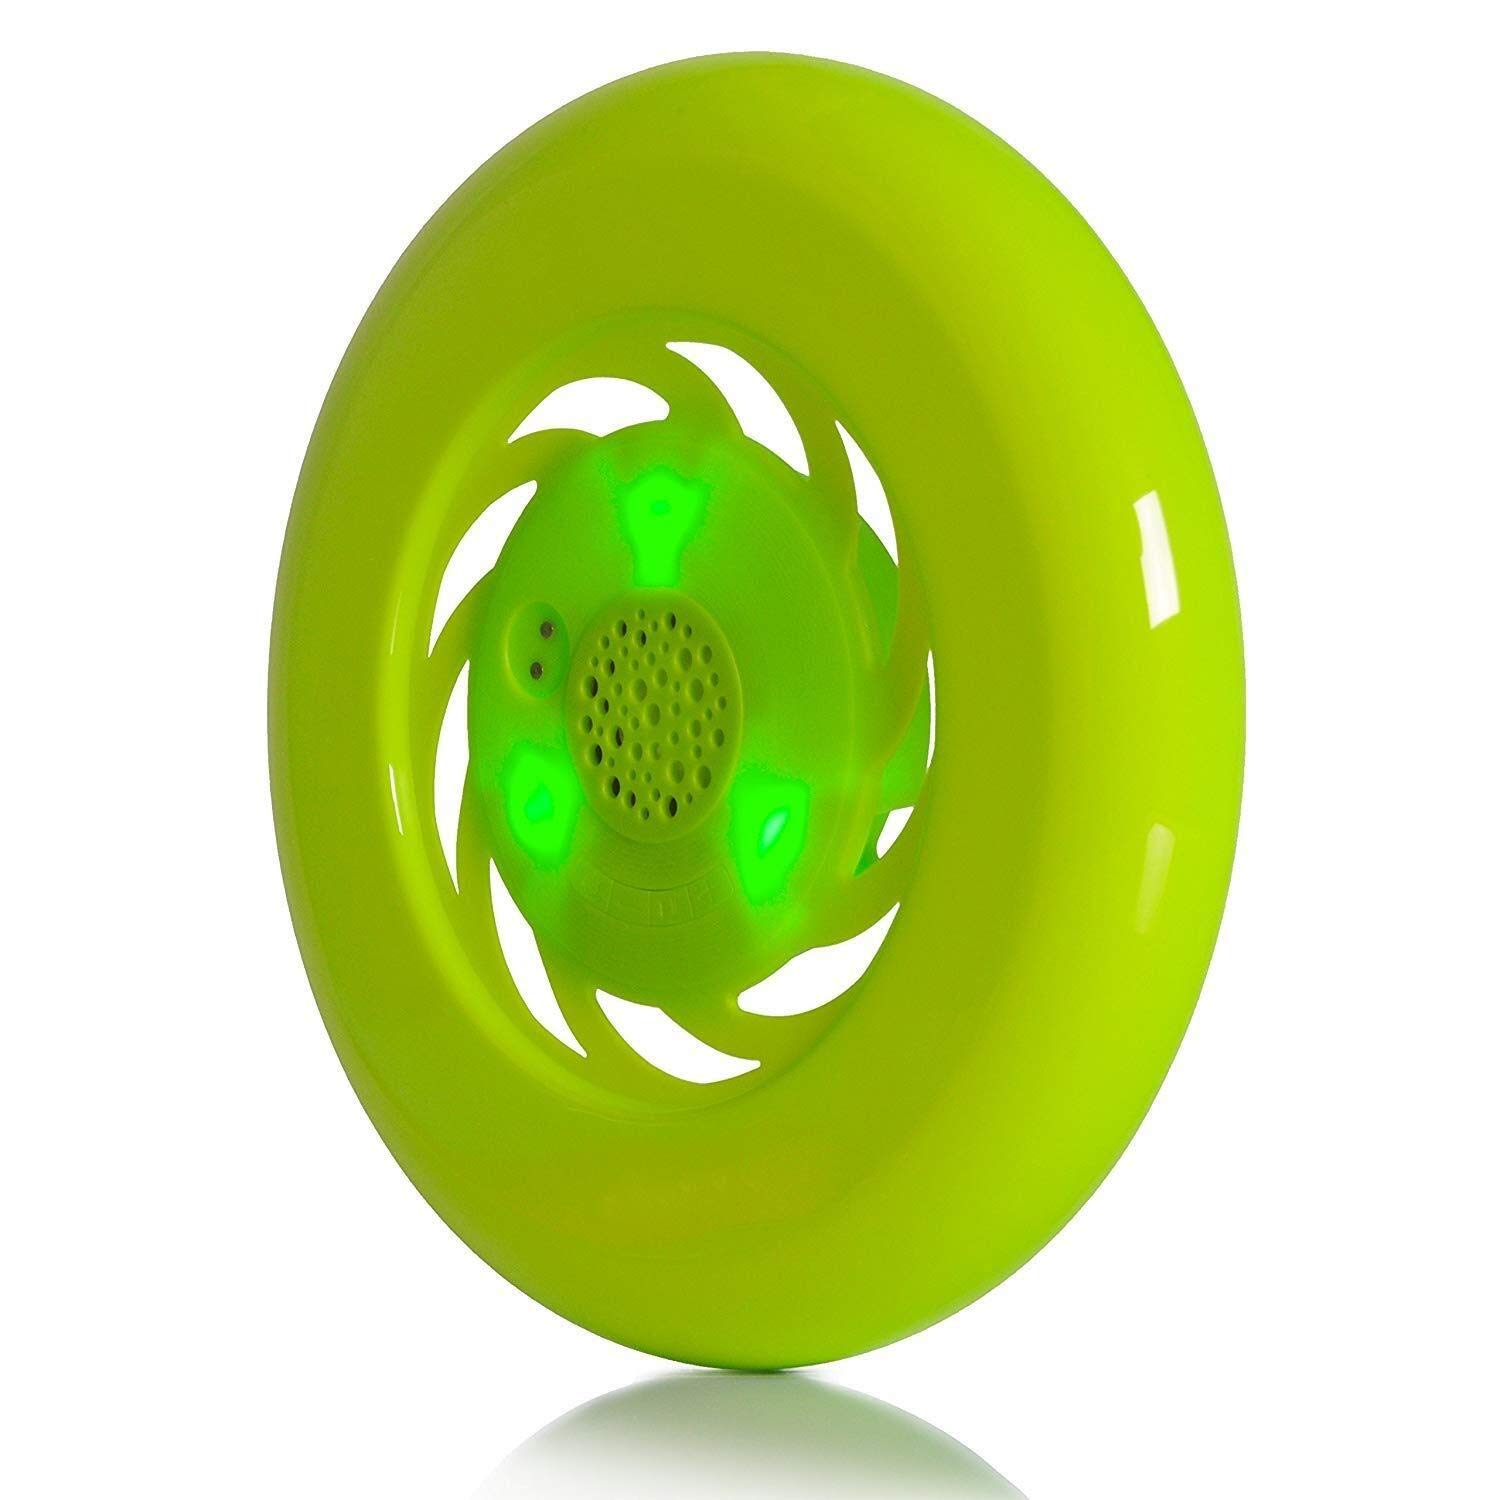 Frisbee Flying Discs Bluetooth Speakers,Wireless Waterproof Speaker with LED Light,for Camping Swimming Fitness Kids and Pets Toys (Color : Green) by LMXQQ